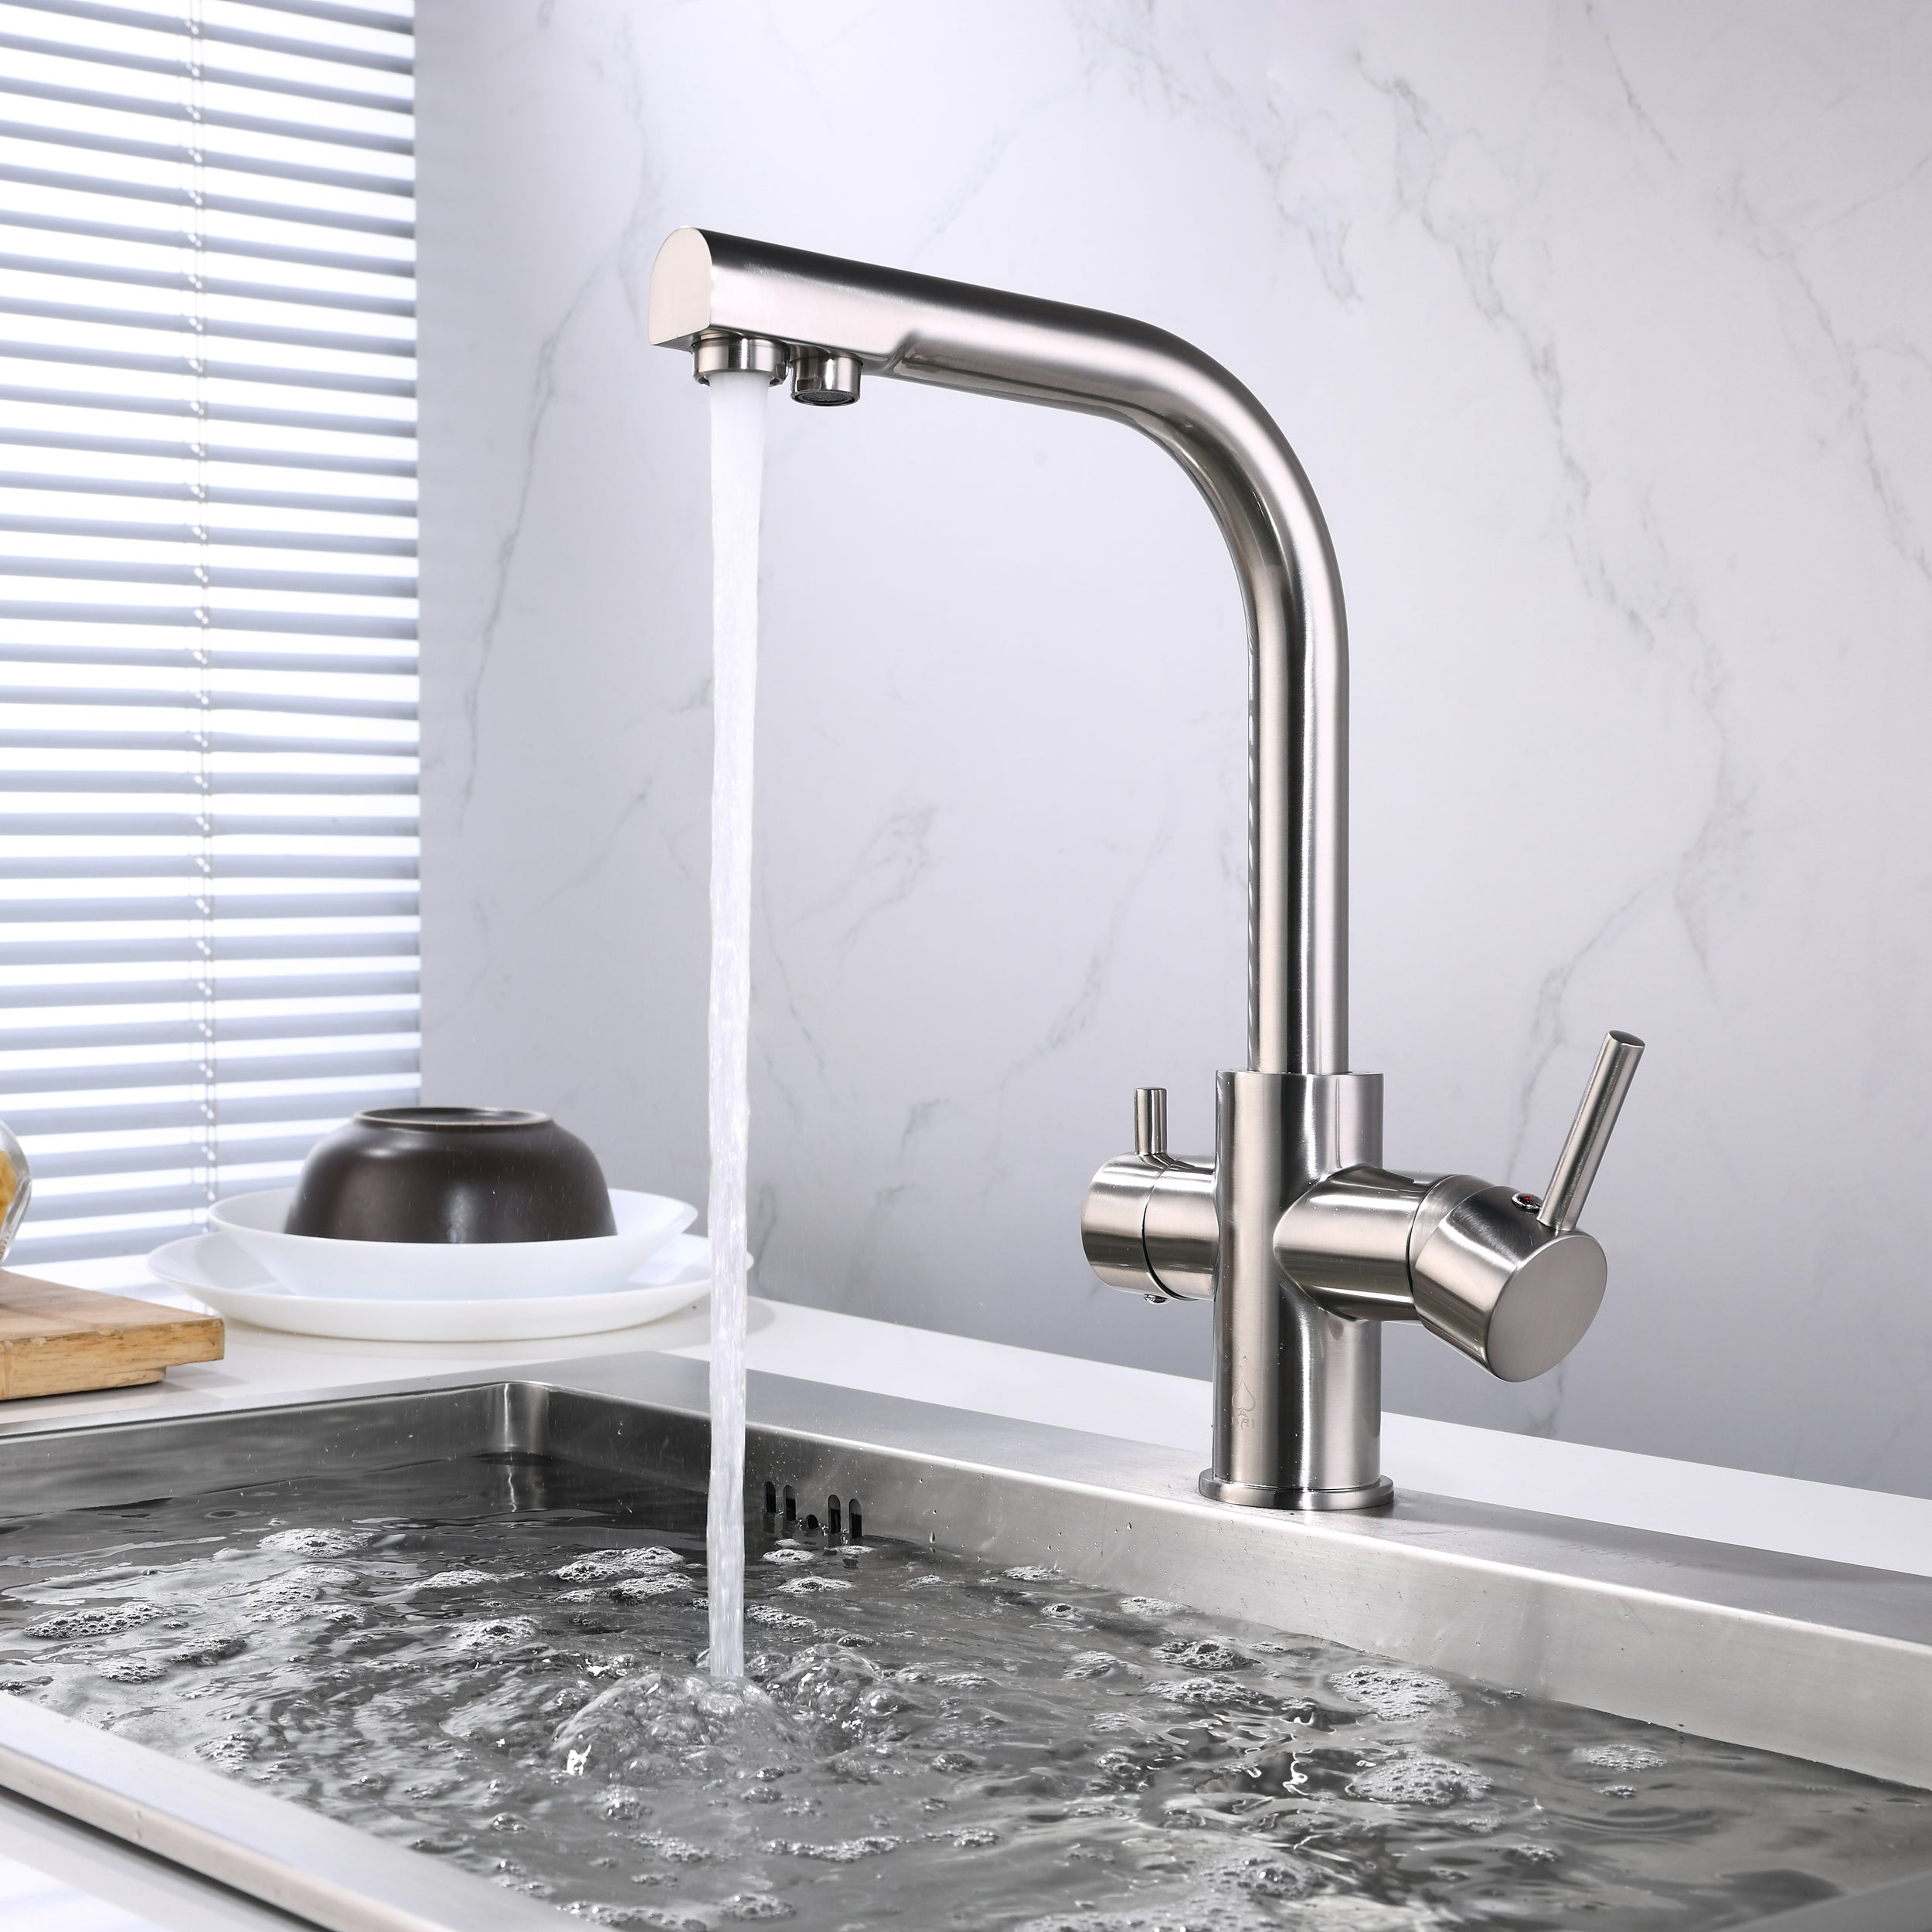 BAI 0664 Kitchen Faucet Integrated Drinking Water Faucet Two